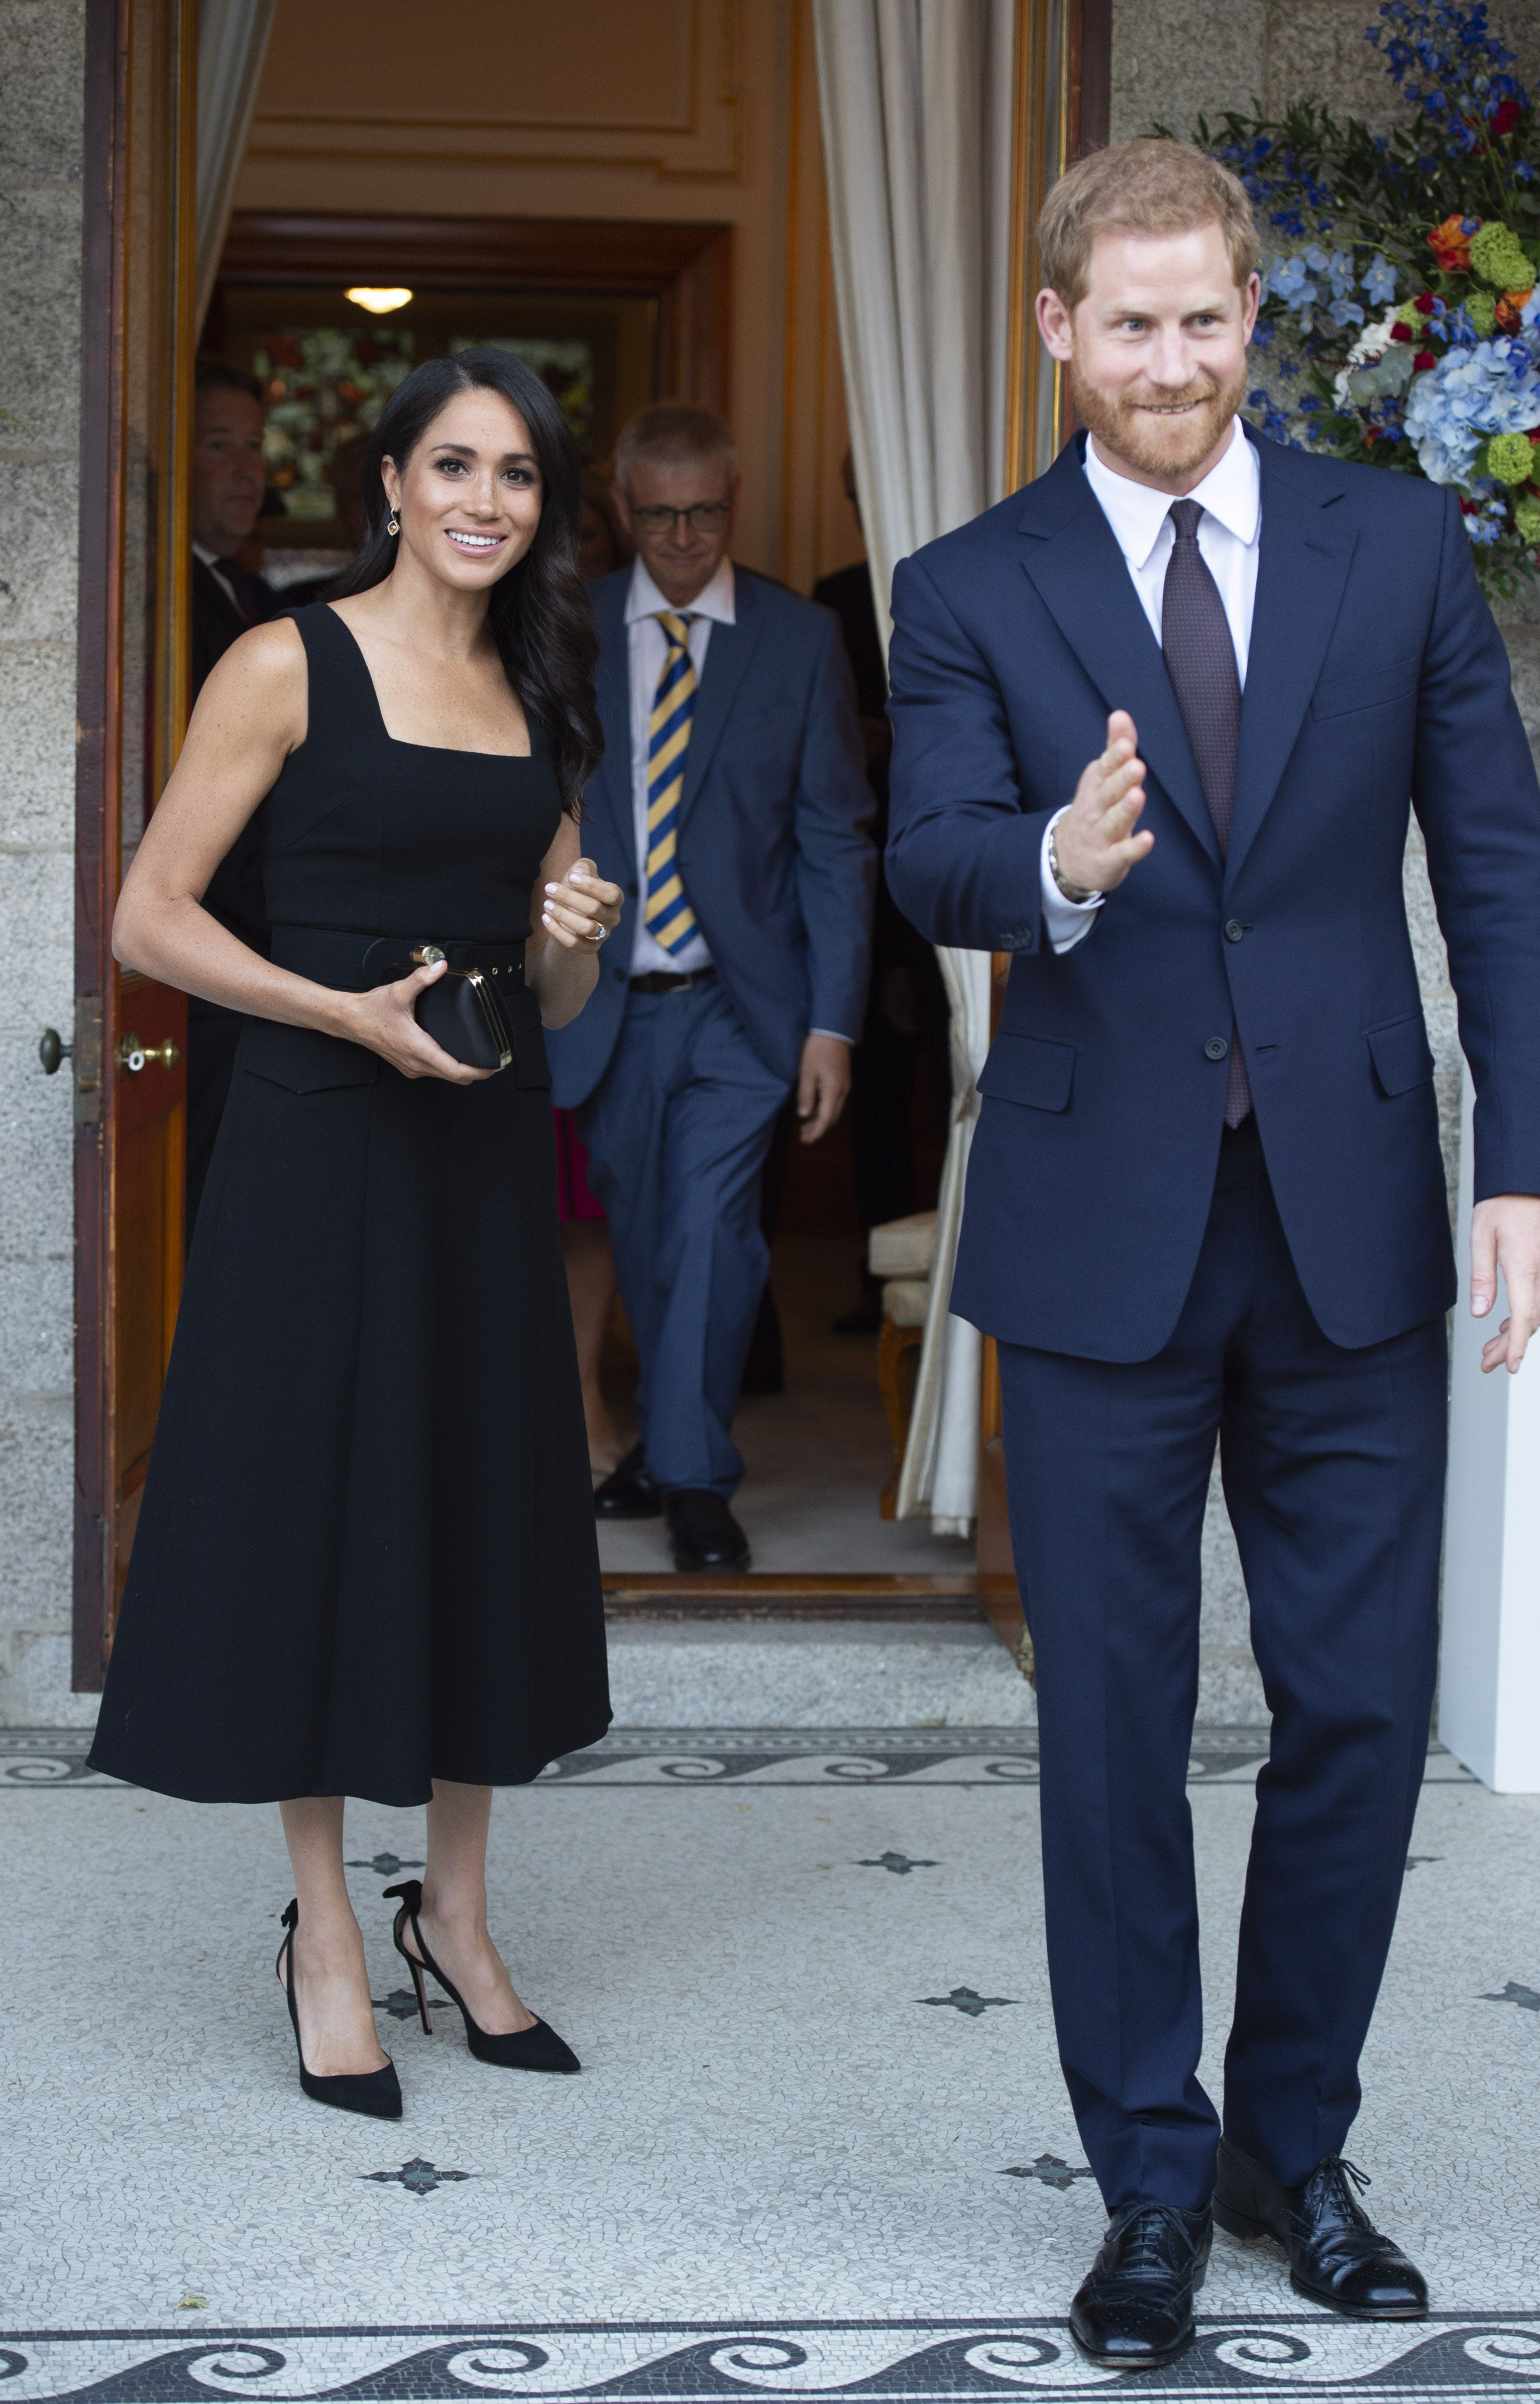 b1920f4b95 Why Meghan Markle s black dress was such a surprising choice